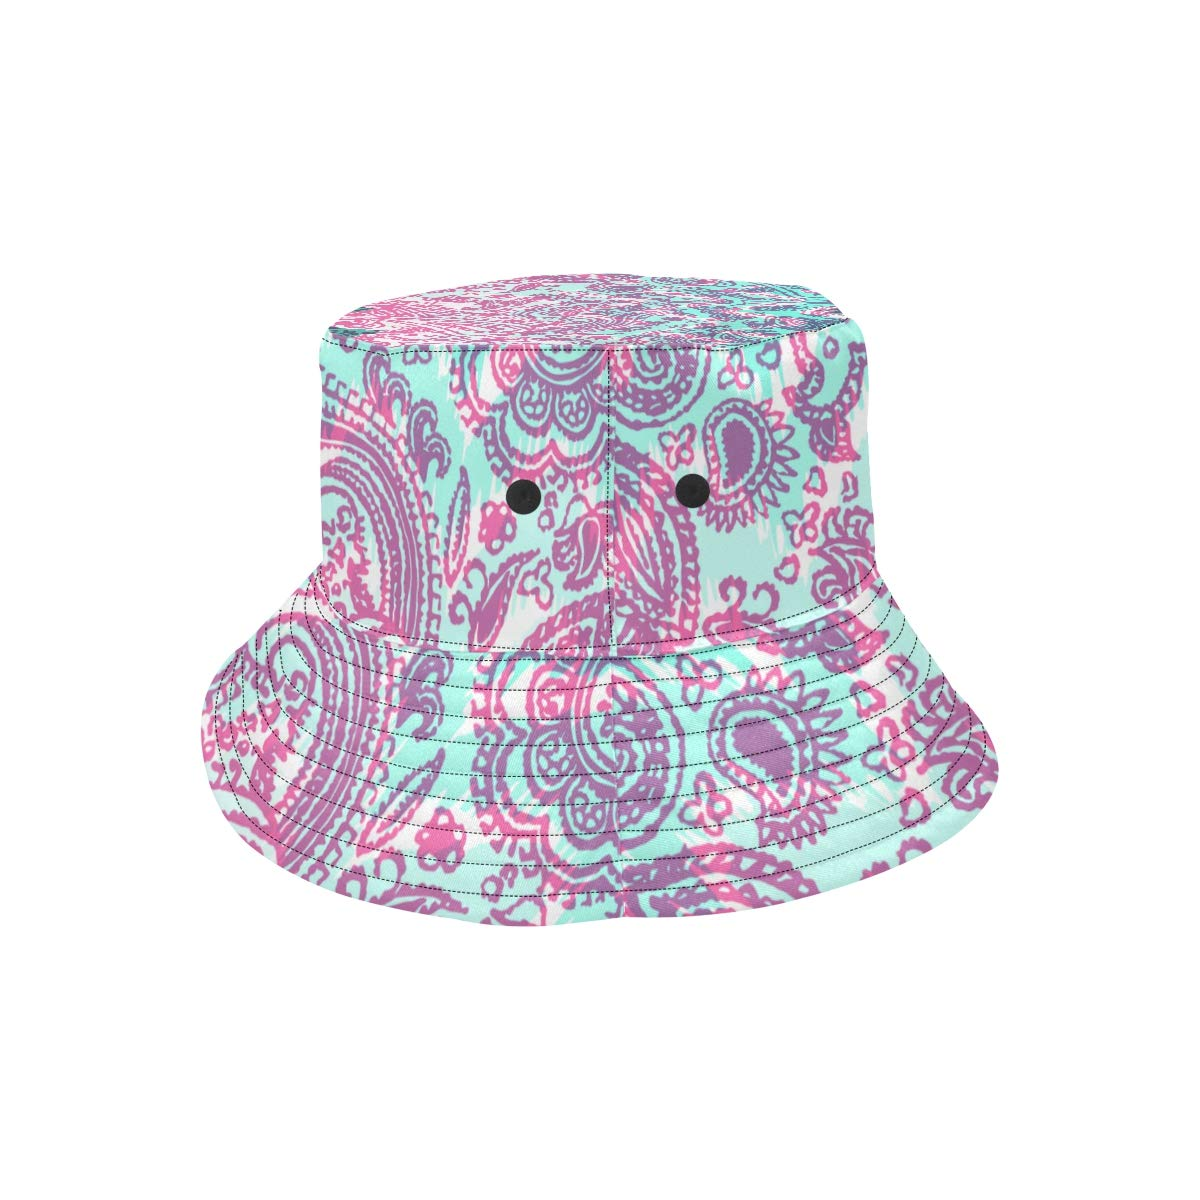 Indian Paisly Popular Design Summer Unisex Fishing Sun Top Bucket Hats for Kid Teens Women and Men with Packable Fisherman Cap for Outdoor Baseball Sport Picnic